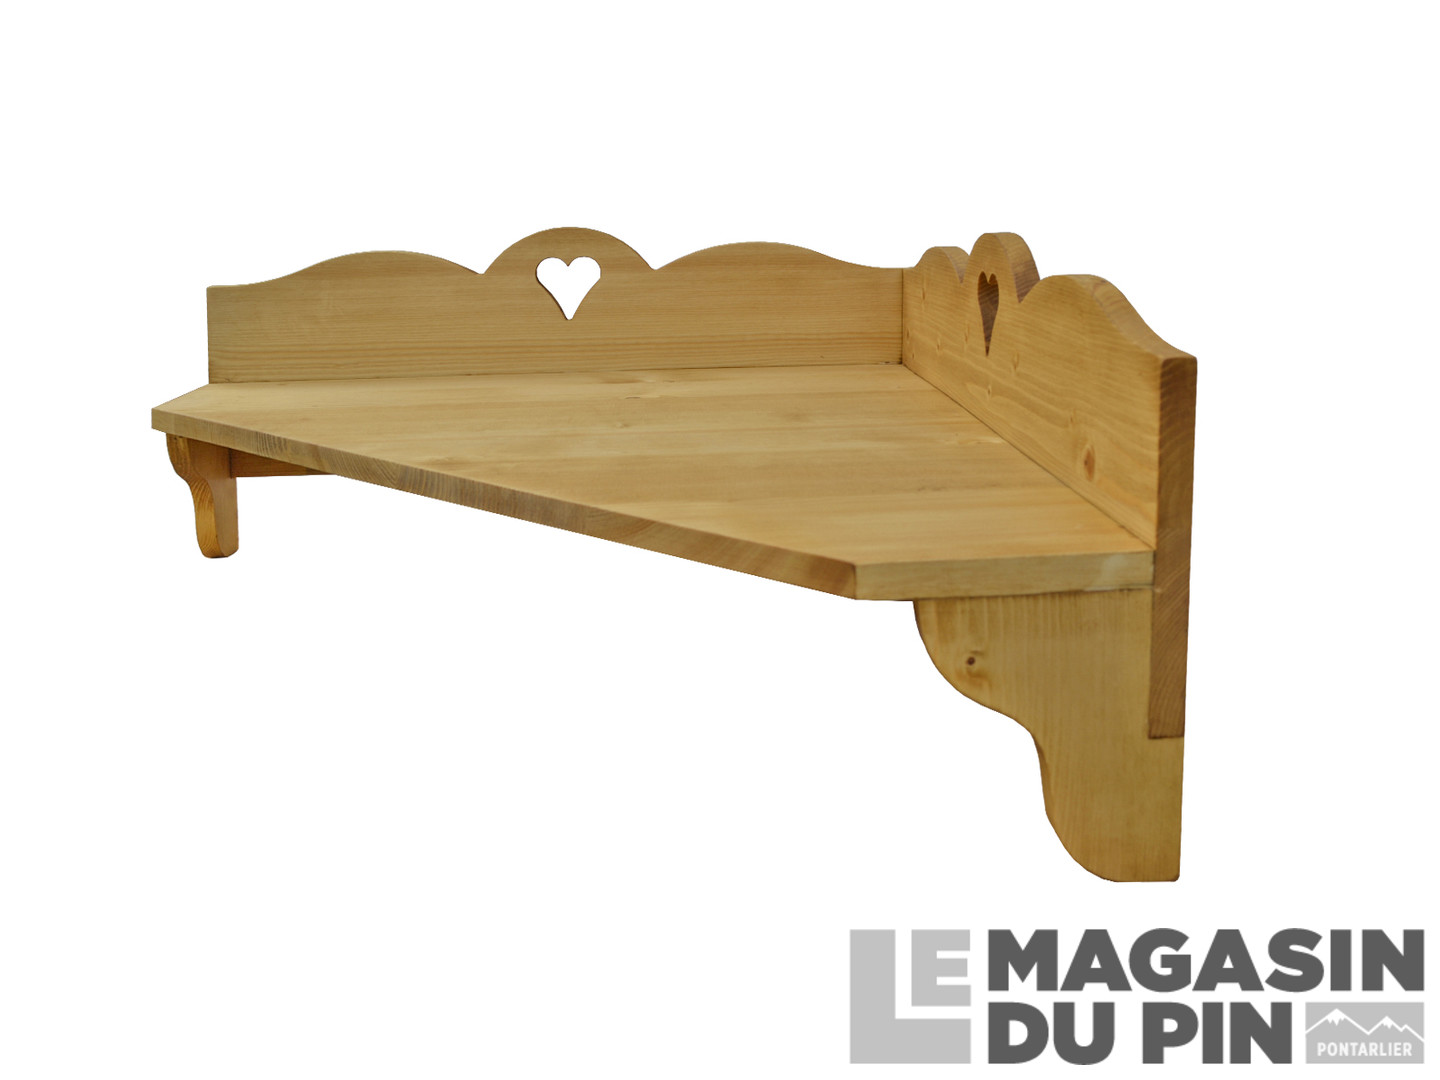 Meuble Suspendu D Angle Pin Massif Chamonix Le Magasin Du Pin # Meuble D'Angle Suspendu